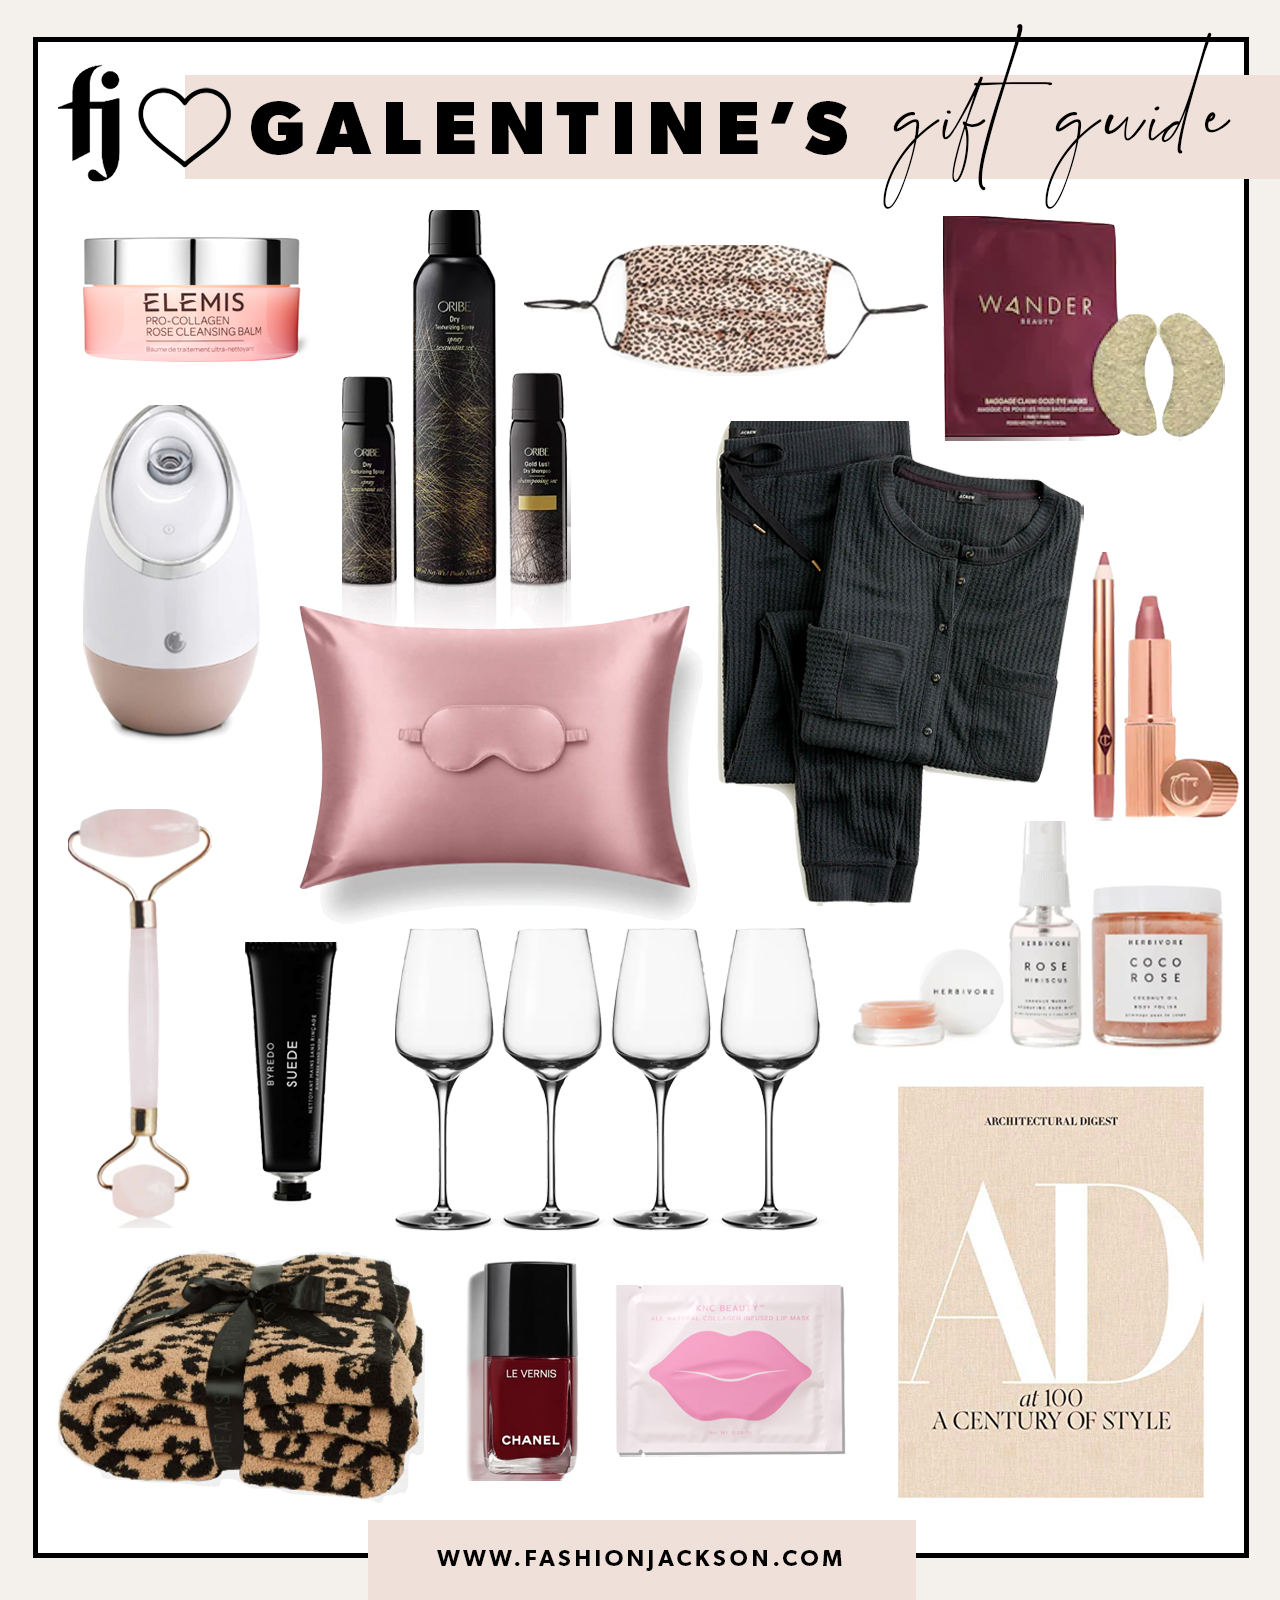 Valentines Gifts for Galentines